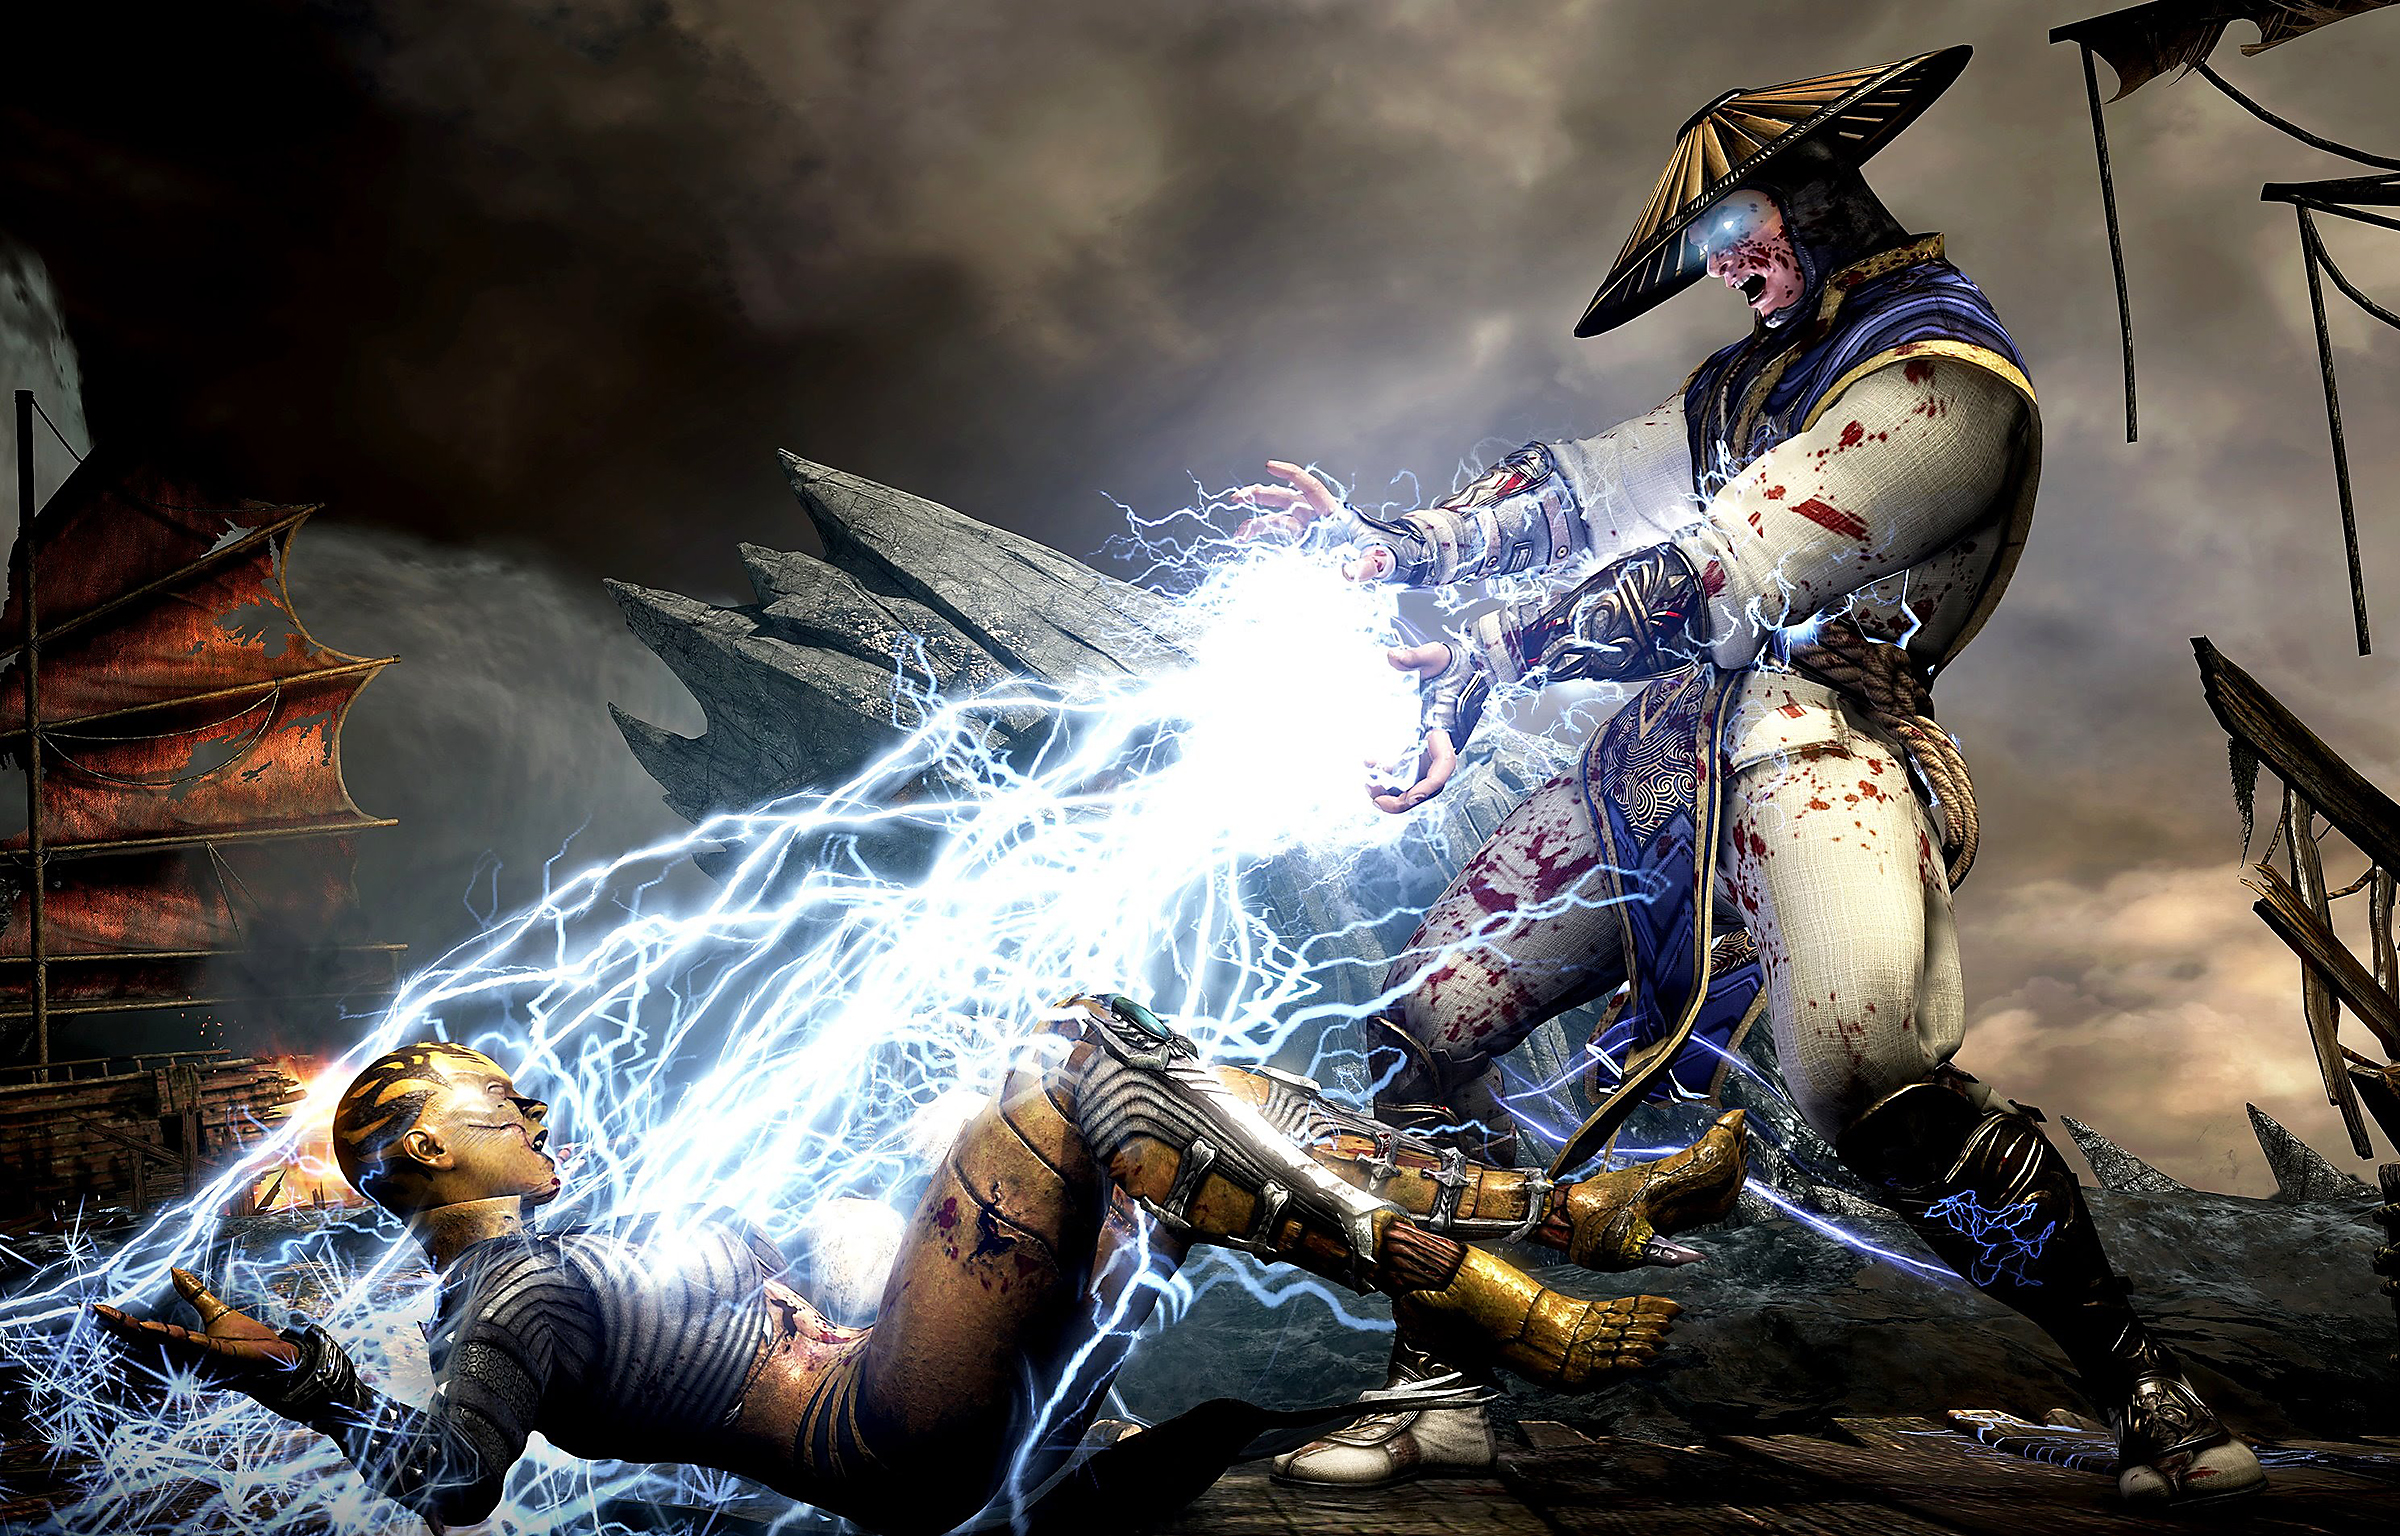 'Mortal Kombat X' fights for a new life - The Blade - photo#33